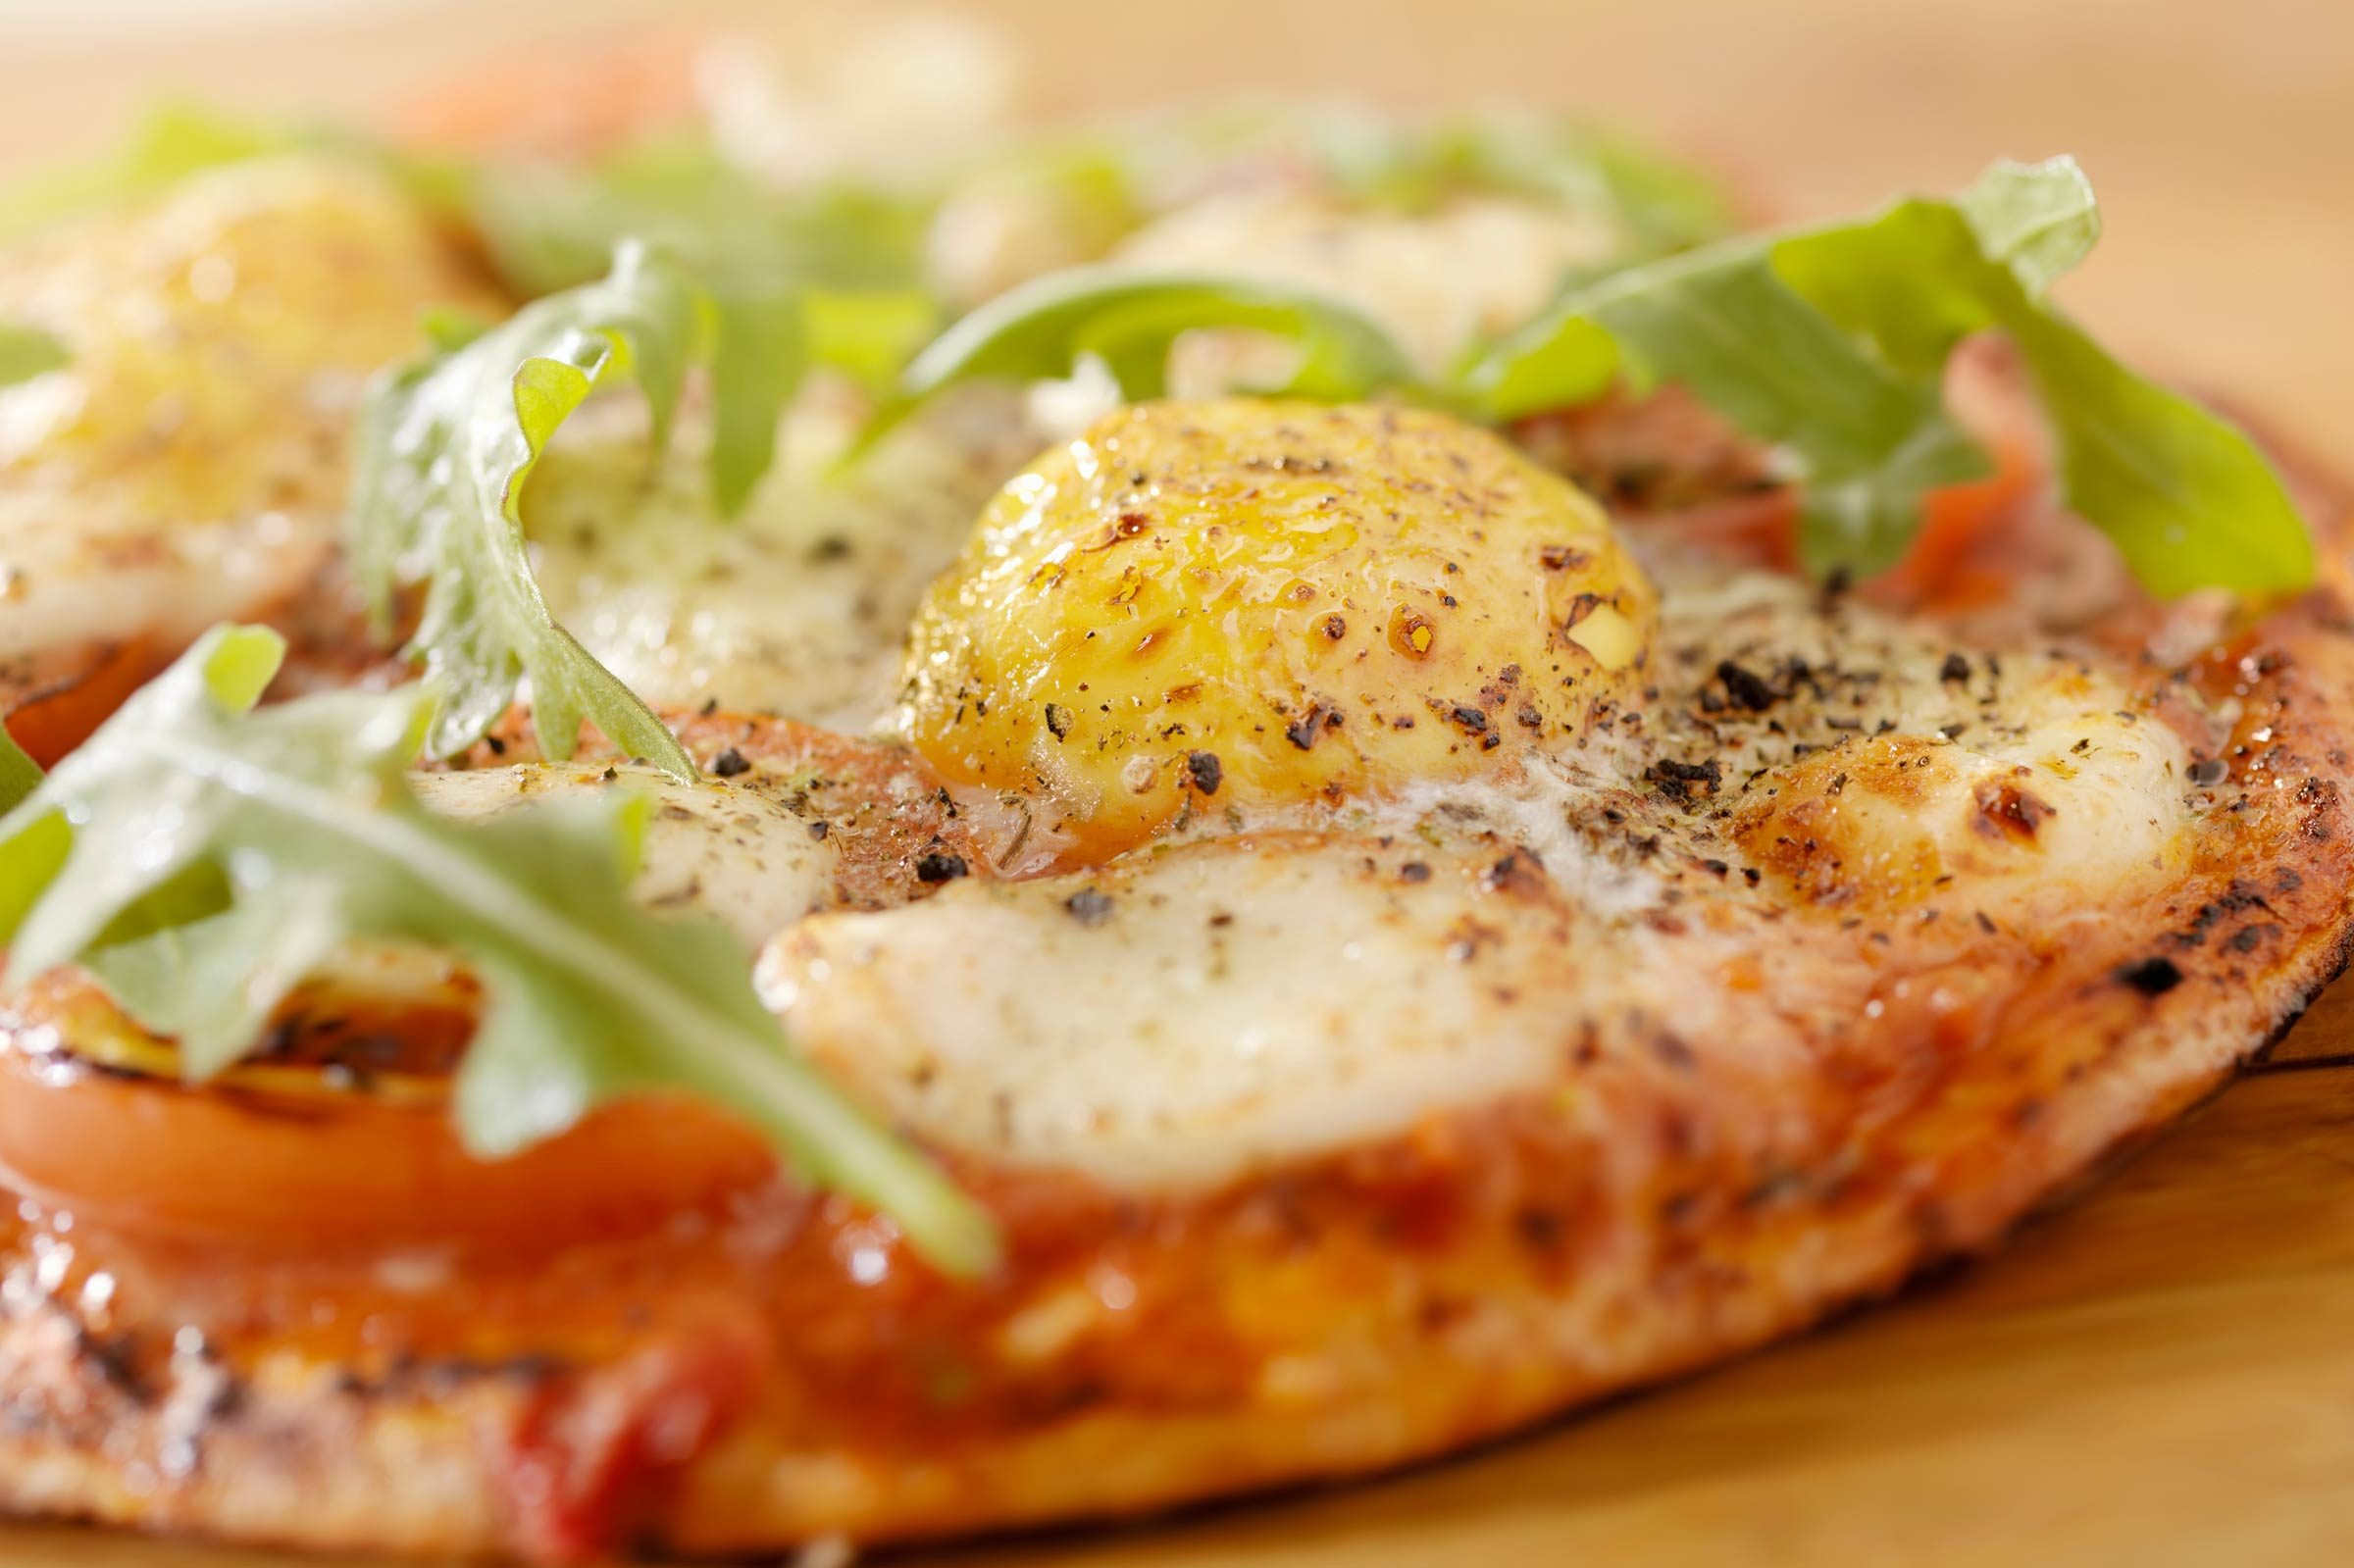 Make an egg-topped pizza